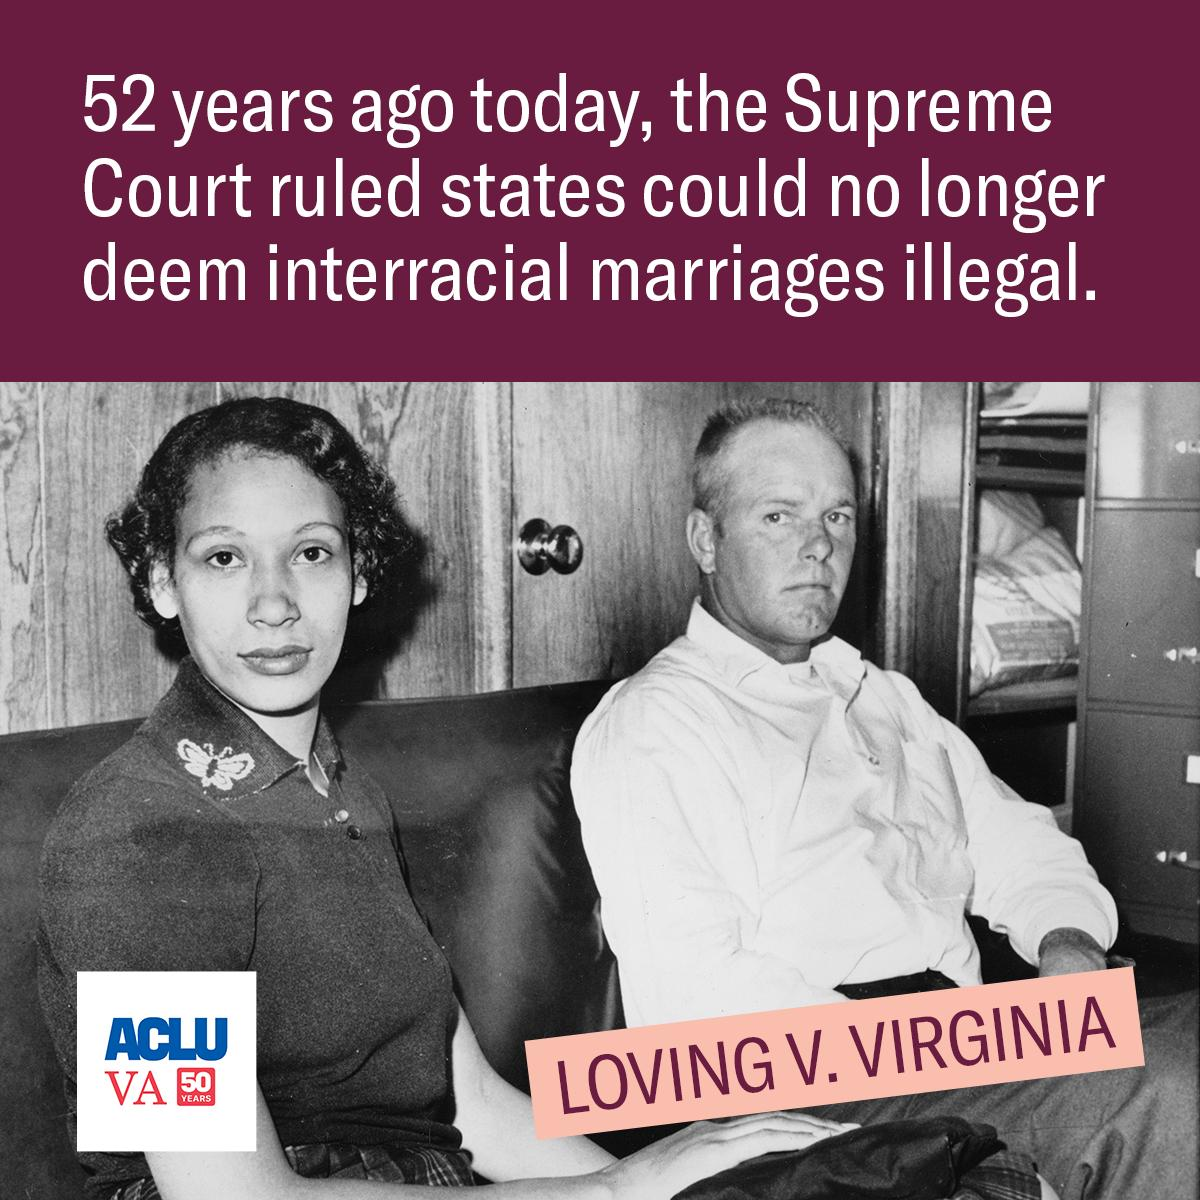 @ACLUVA's photo on #LovingDay